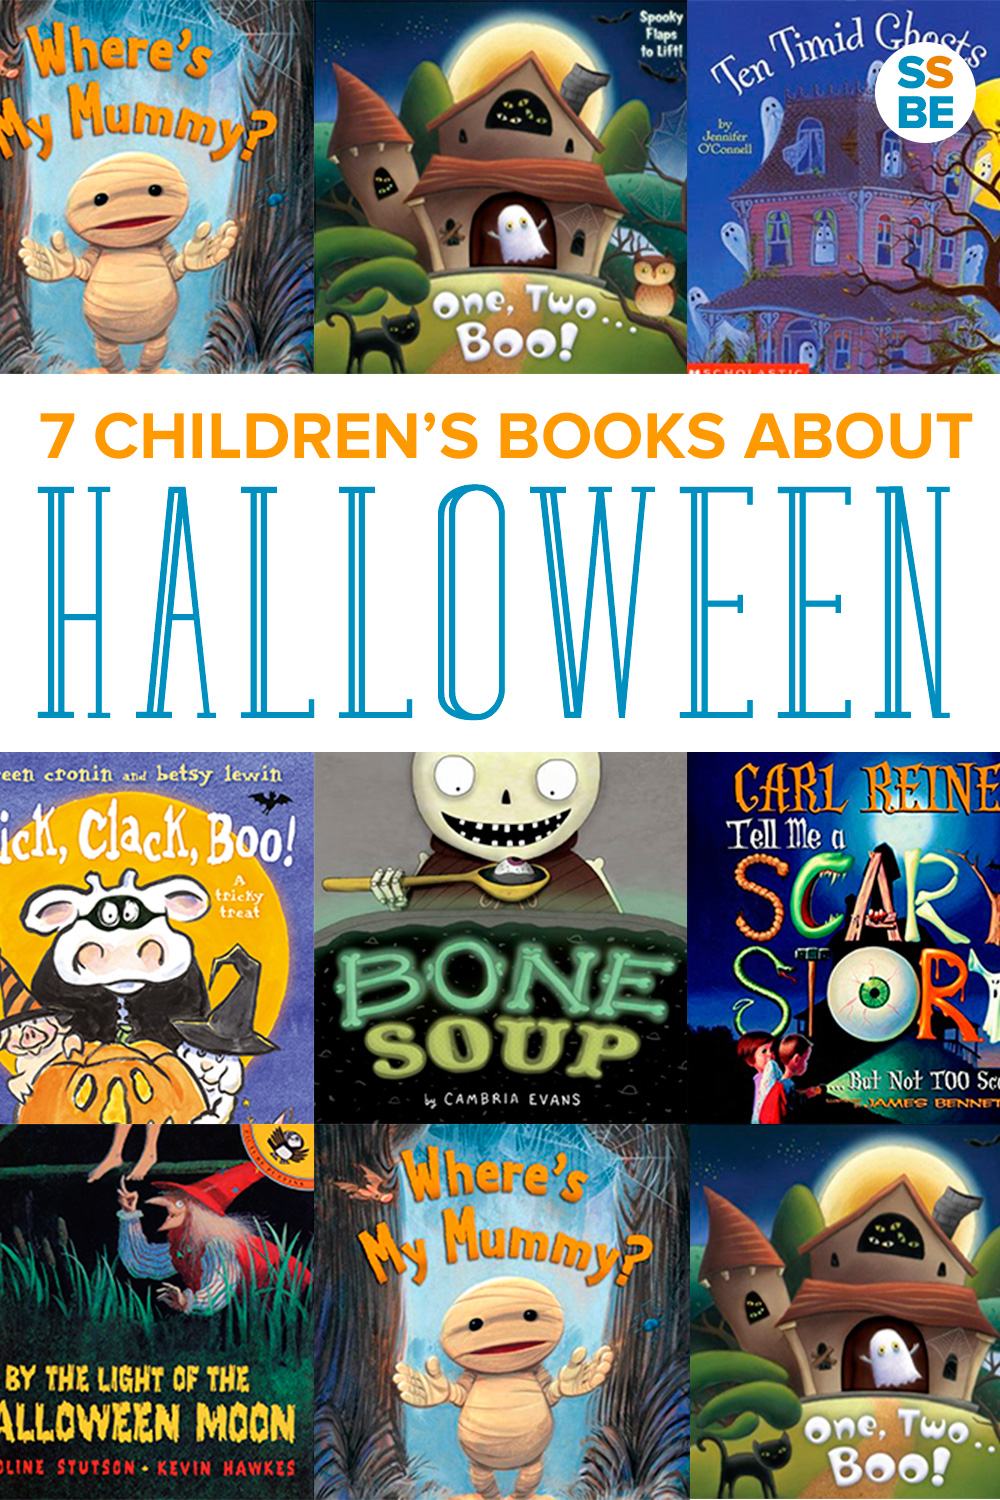 Get ready for fun with these Halloween stories for kids. Read these books on mummies, ghosts and pumpkins as you head into our spookiest season!